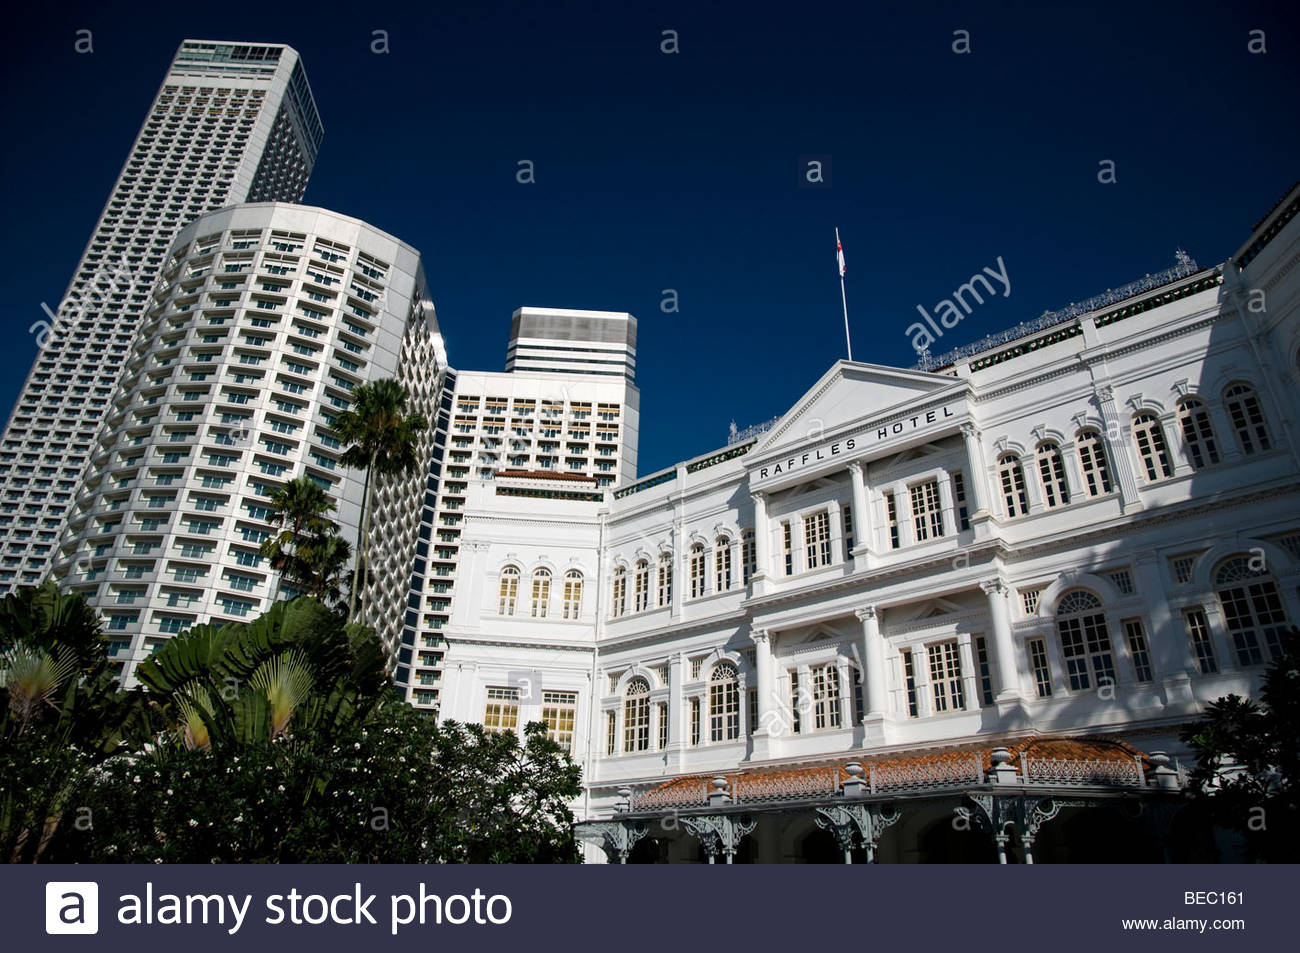 Raffles Hotel, a luxury colonial-style hotel, Singapore - Stock Image